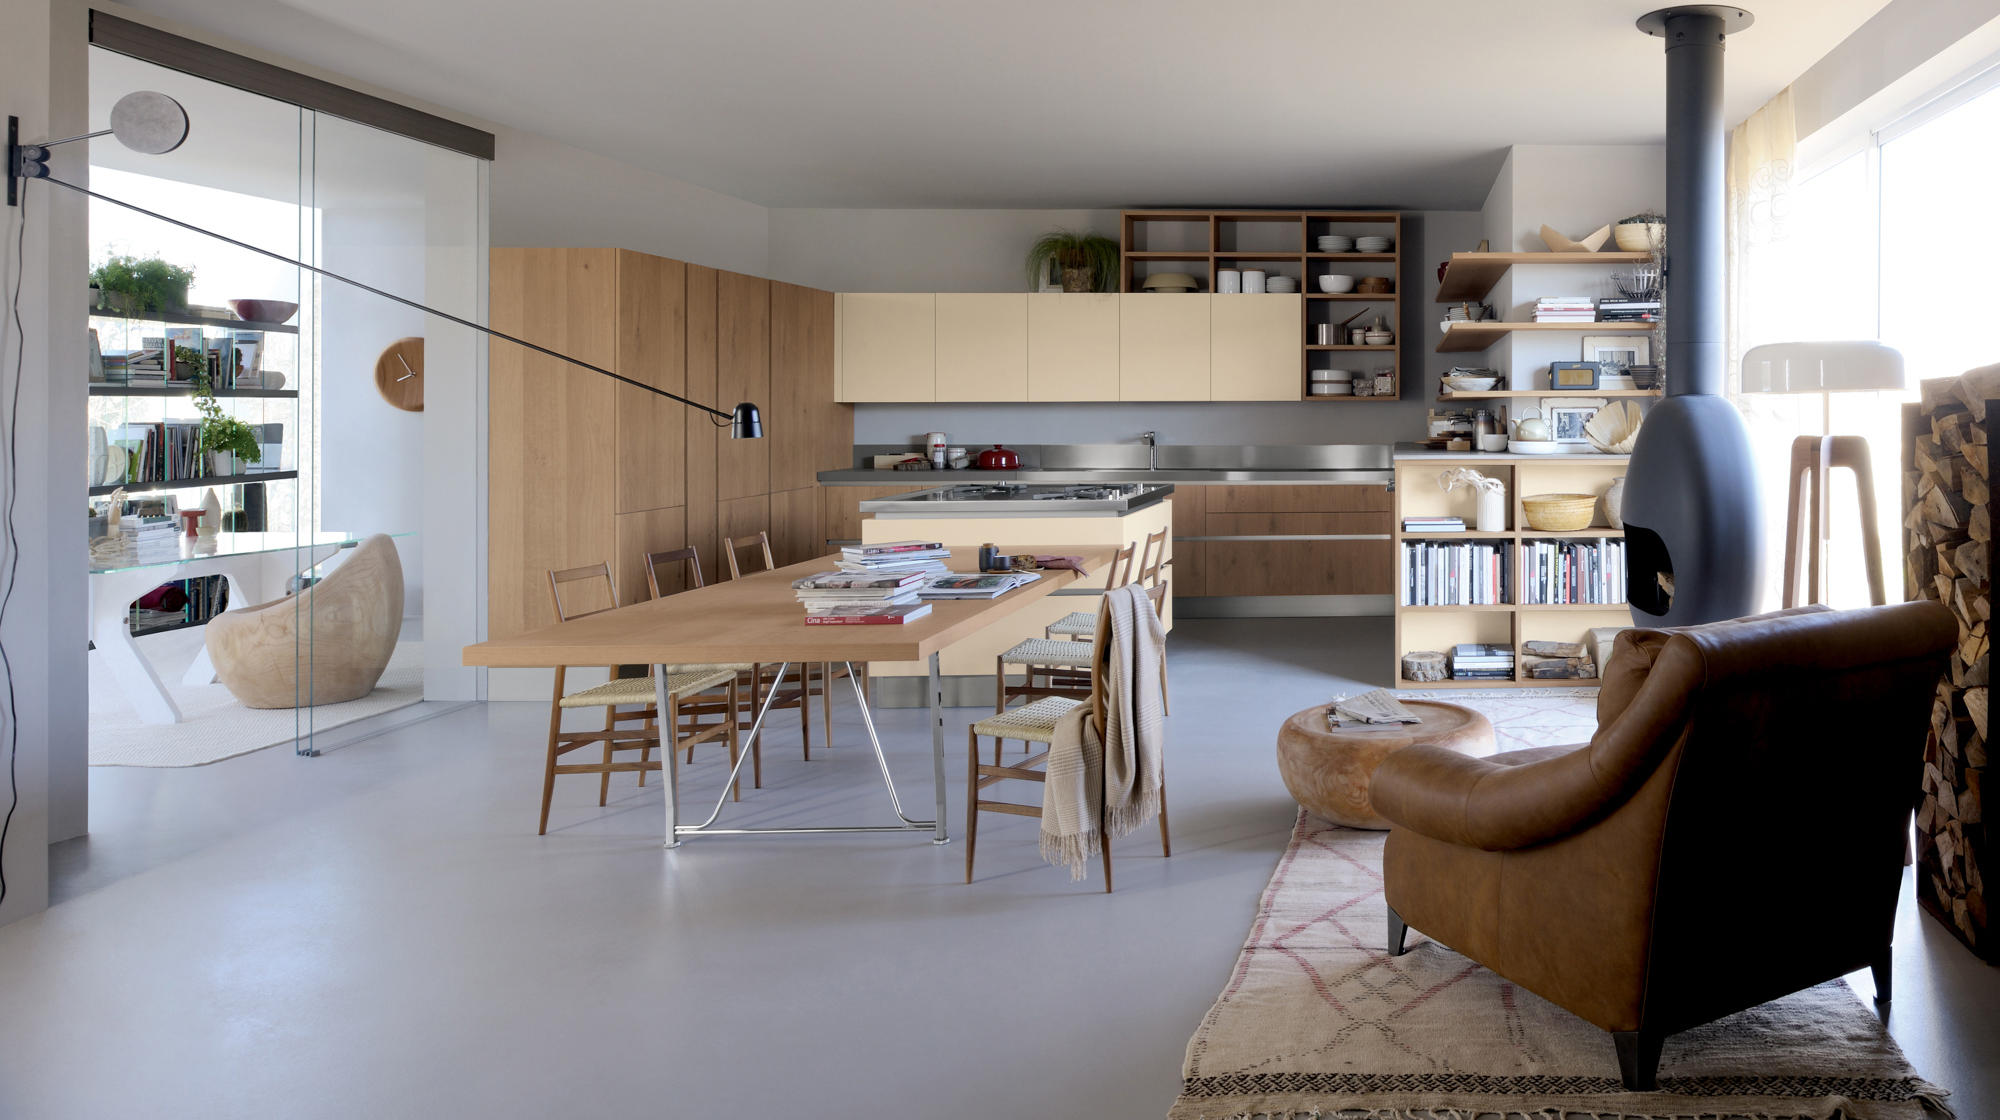 OYSTER - Island kitchens from Veneta Cucine | Architonic